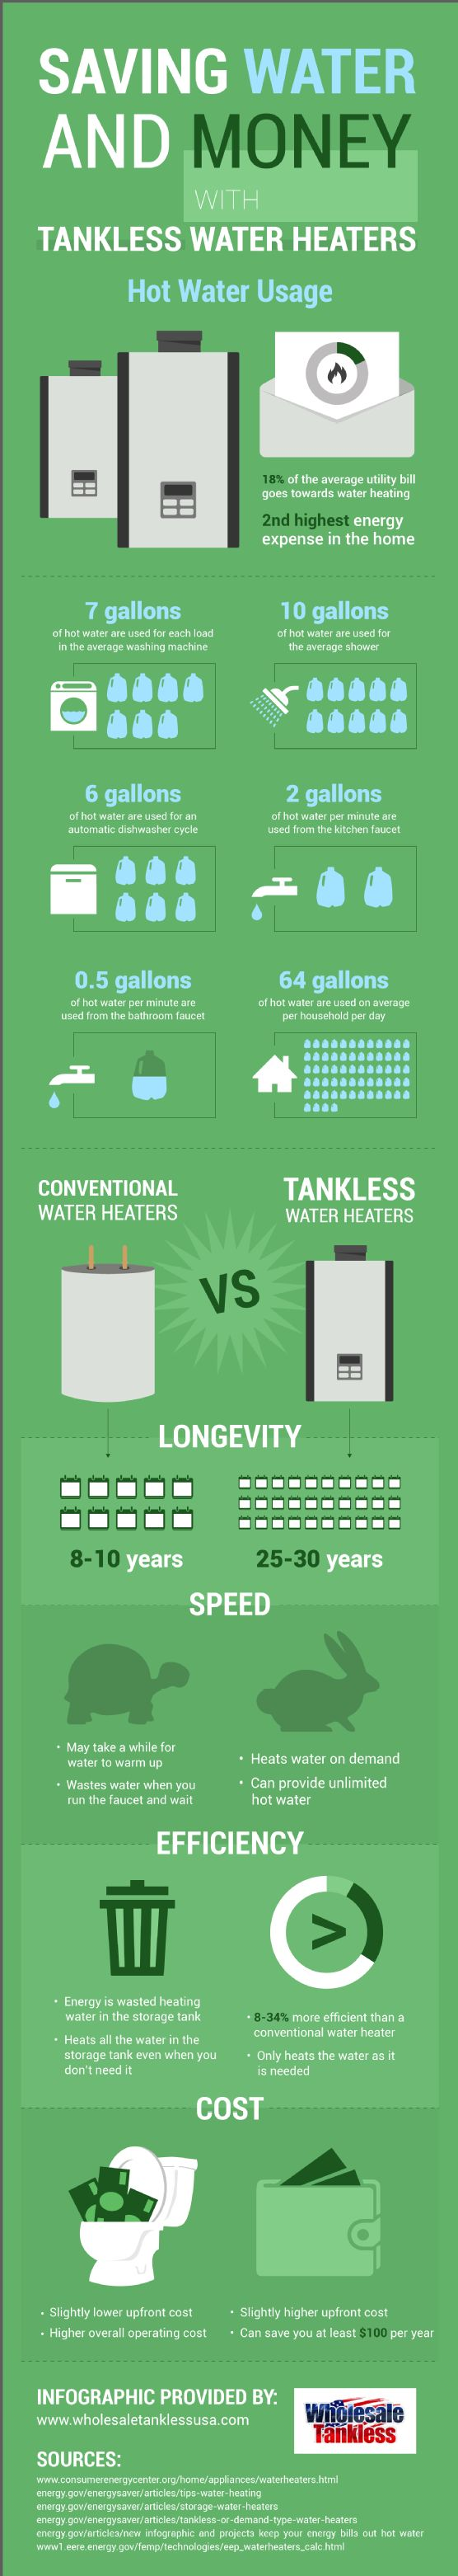 Conventional #WaterHeaters Have A Slightly Lower Upfront Cost Than Tankless Water Heaters. However, Conventional Water Heaters Have A Higher Overall Operating Cost. In Fact, Tankless Water Heaters Can Help You Save At Least $100 Per Year On Your Utility Bills. -LoveInforgraphics #HomeOwnerTips #EnergyEfficiency